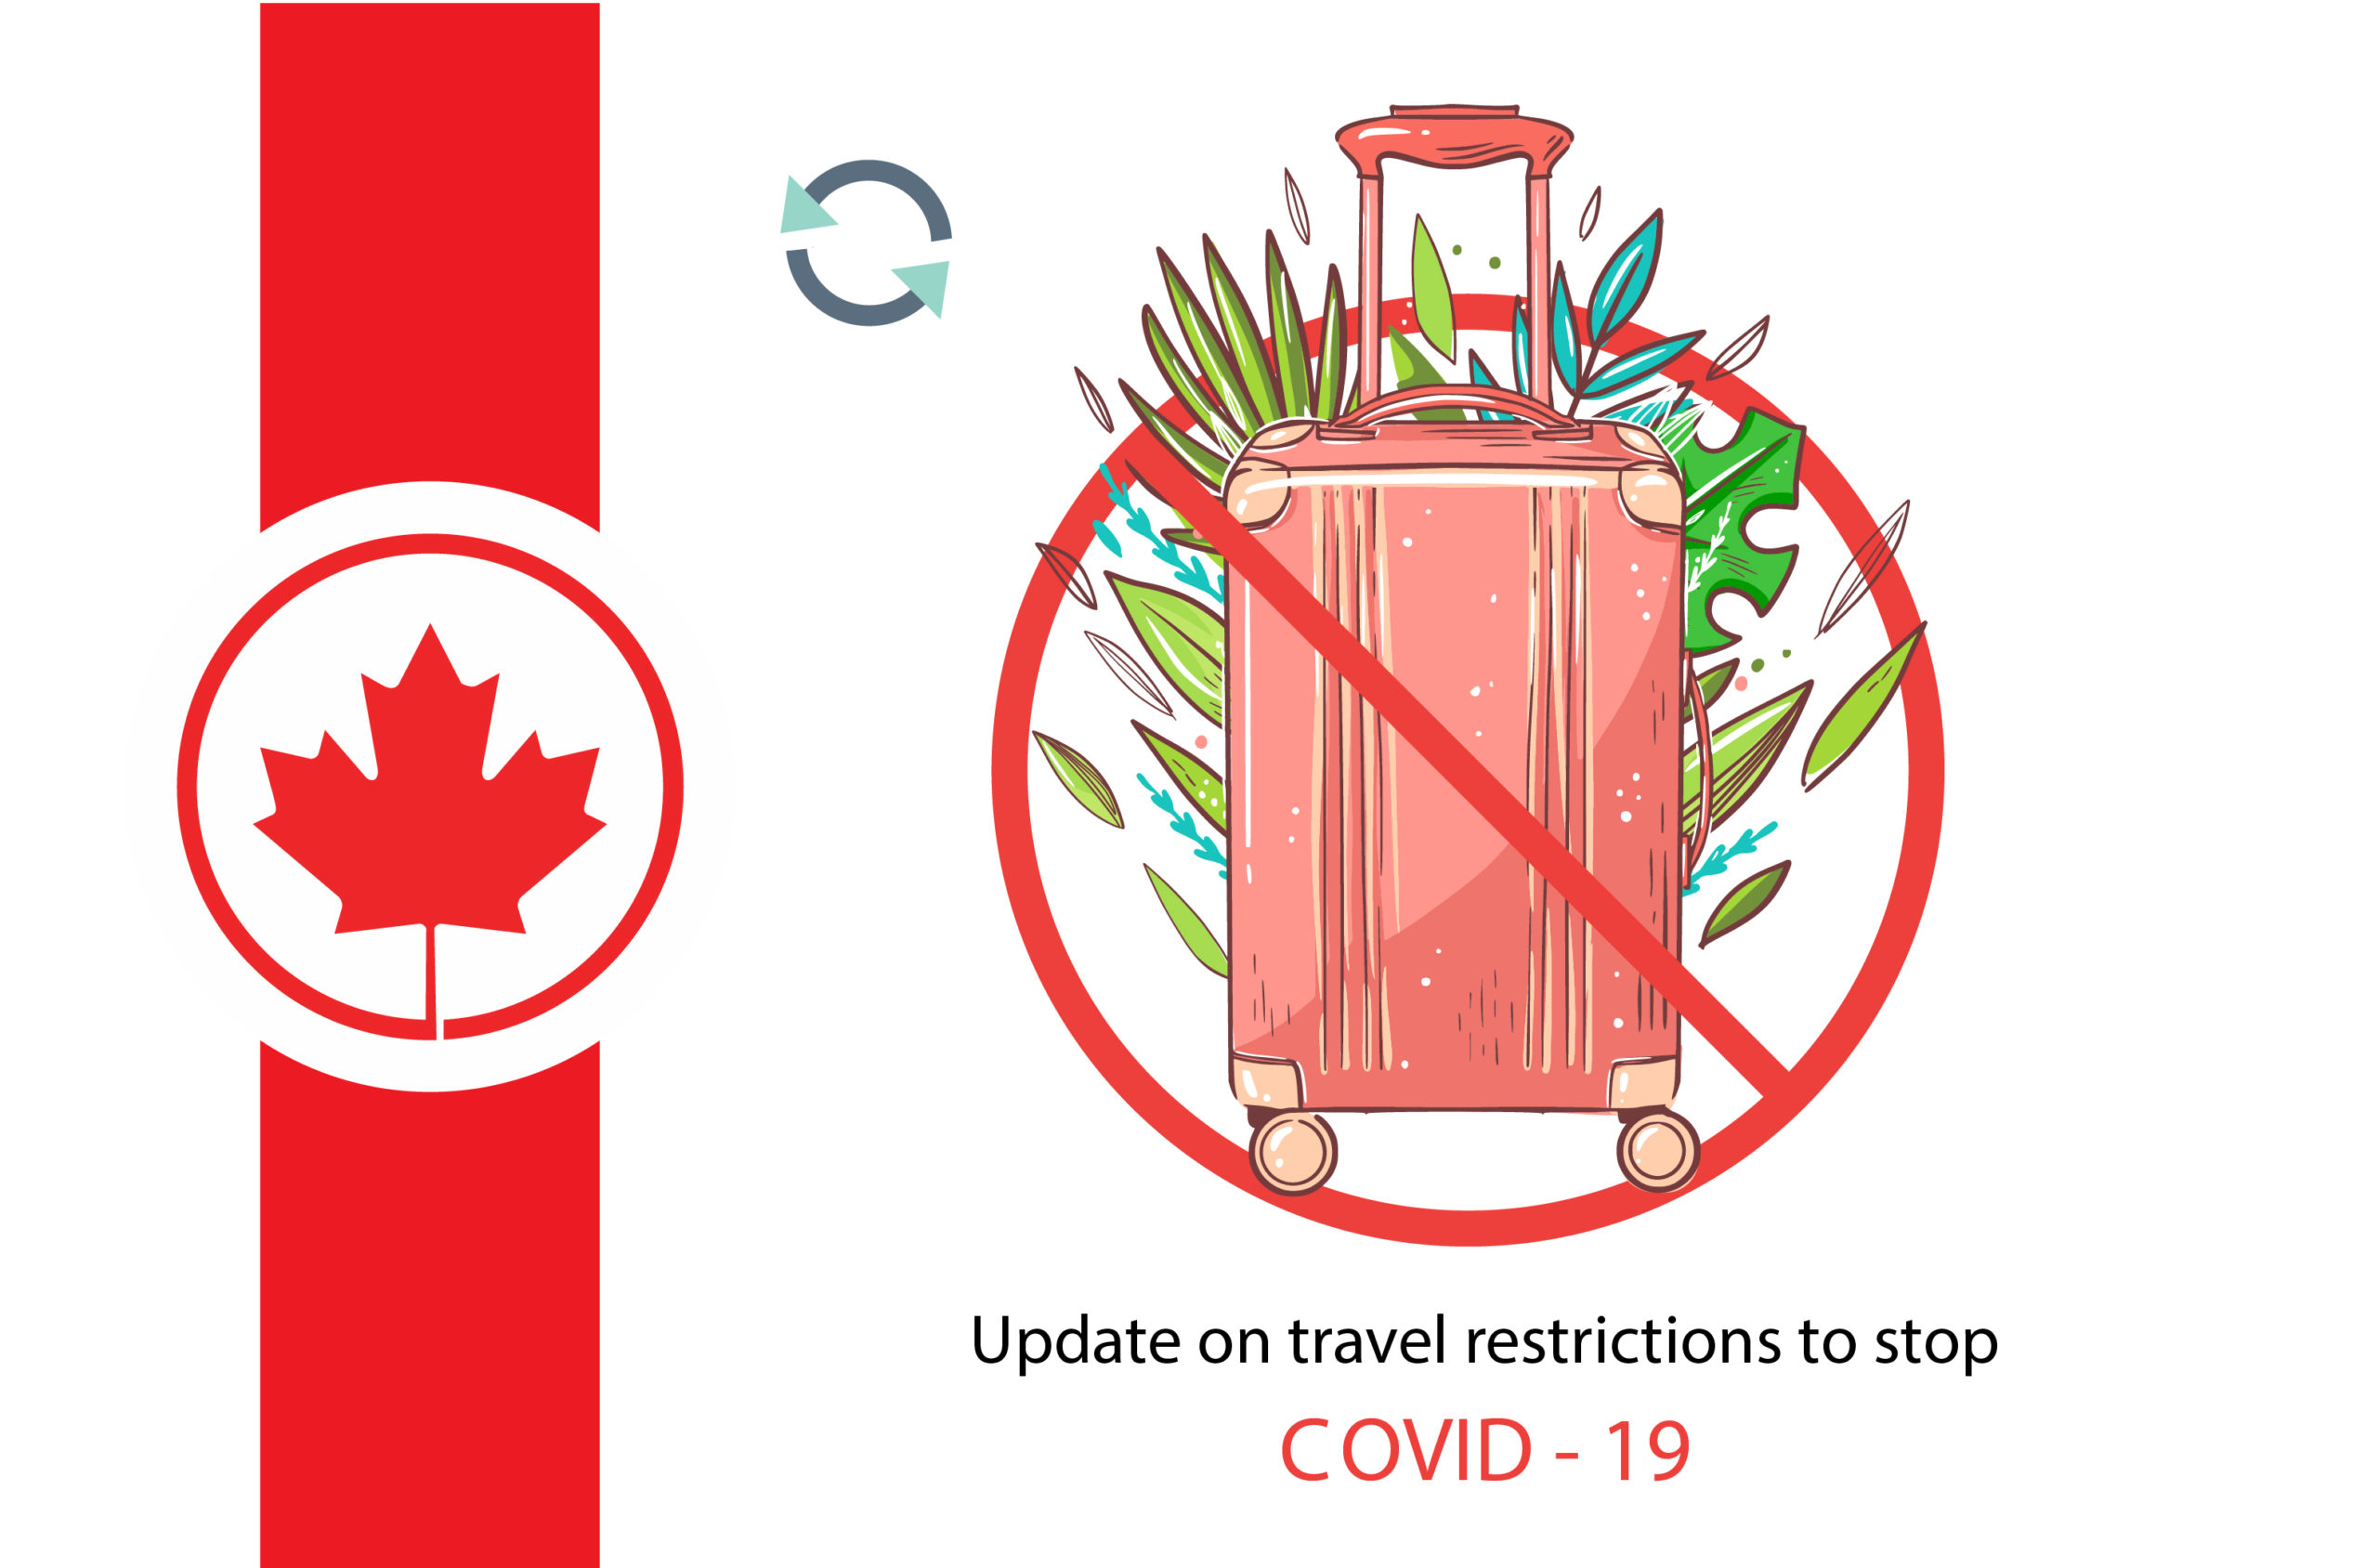 Update on travel restrictions put in place to stem the spread of COVID-19